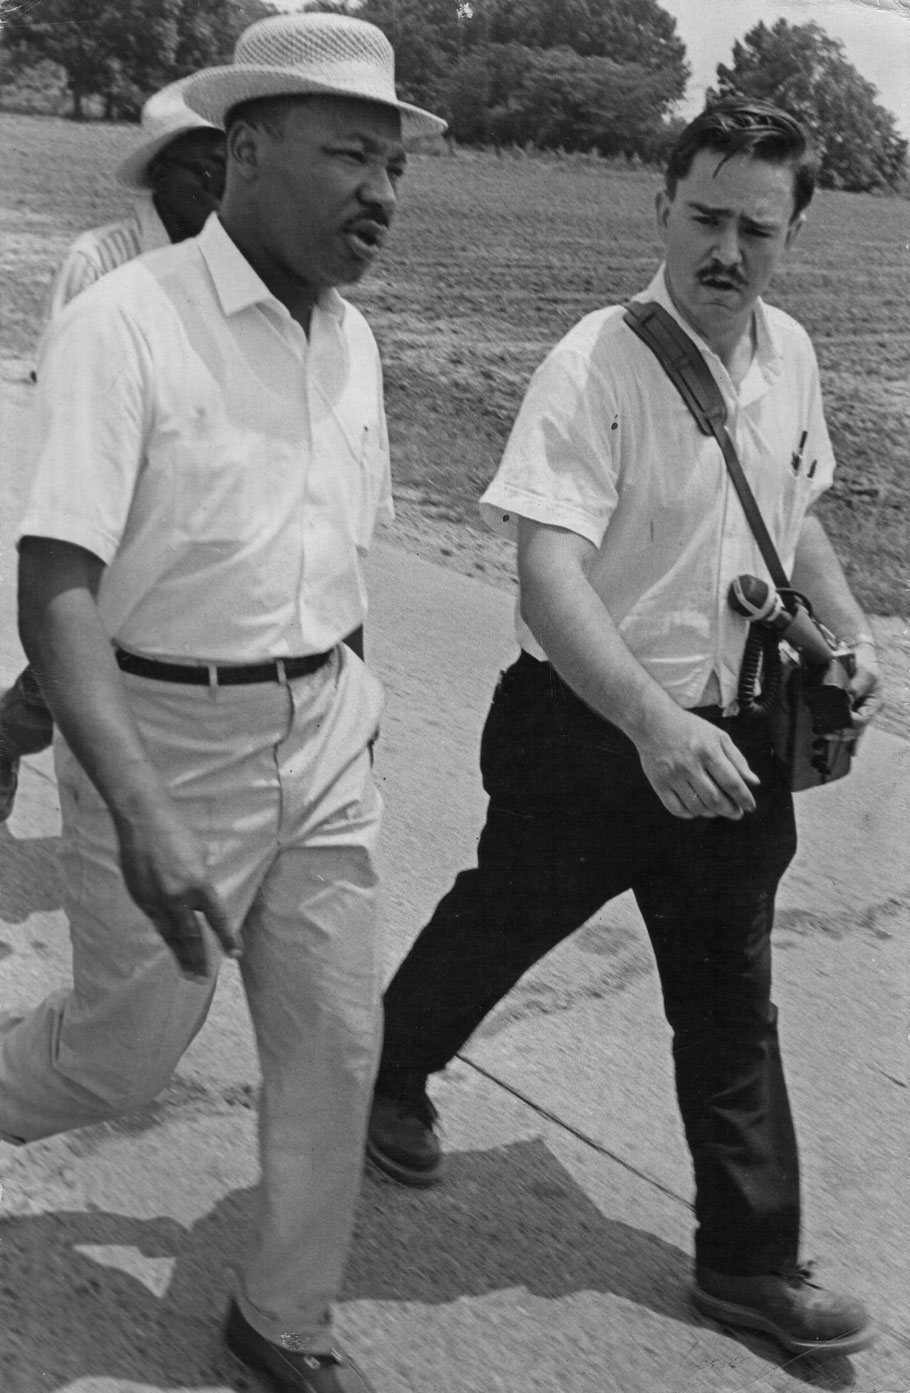 Dr. King and Harky, carrying his tape recorder, 1966